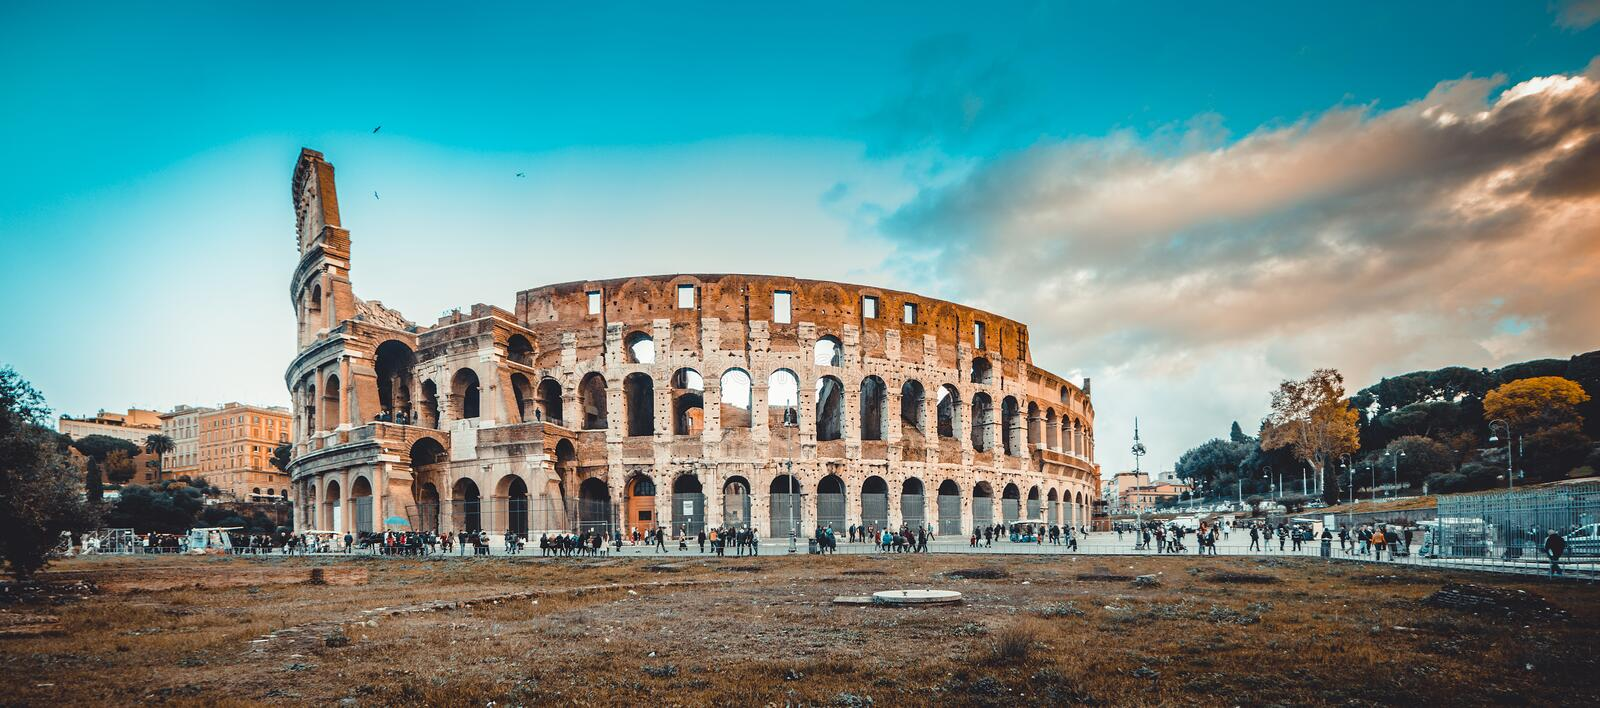 Colosseum in the Rome royalty free stock photos